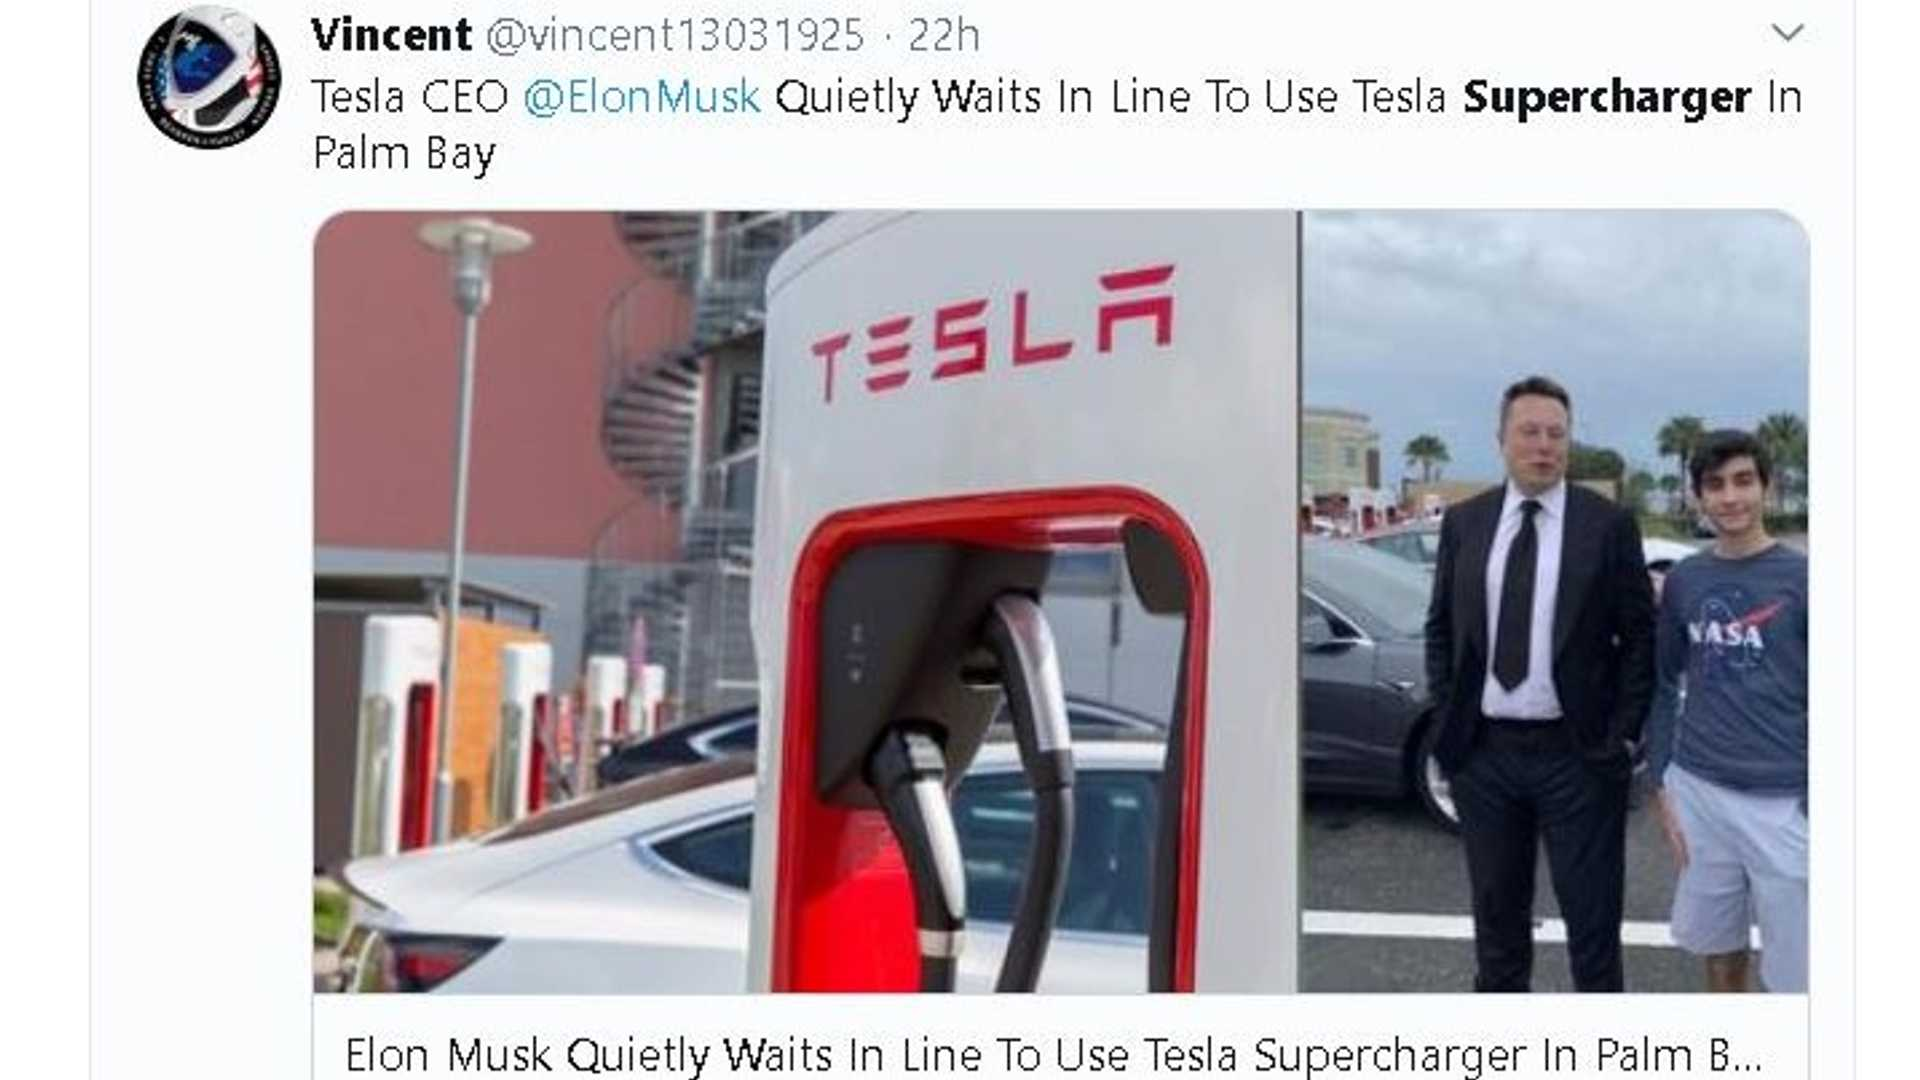 Tesla CEO Elon Musk waits for Supercharger, meets owners and fans